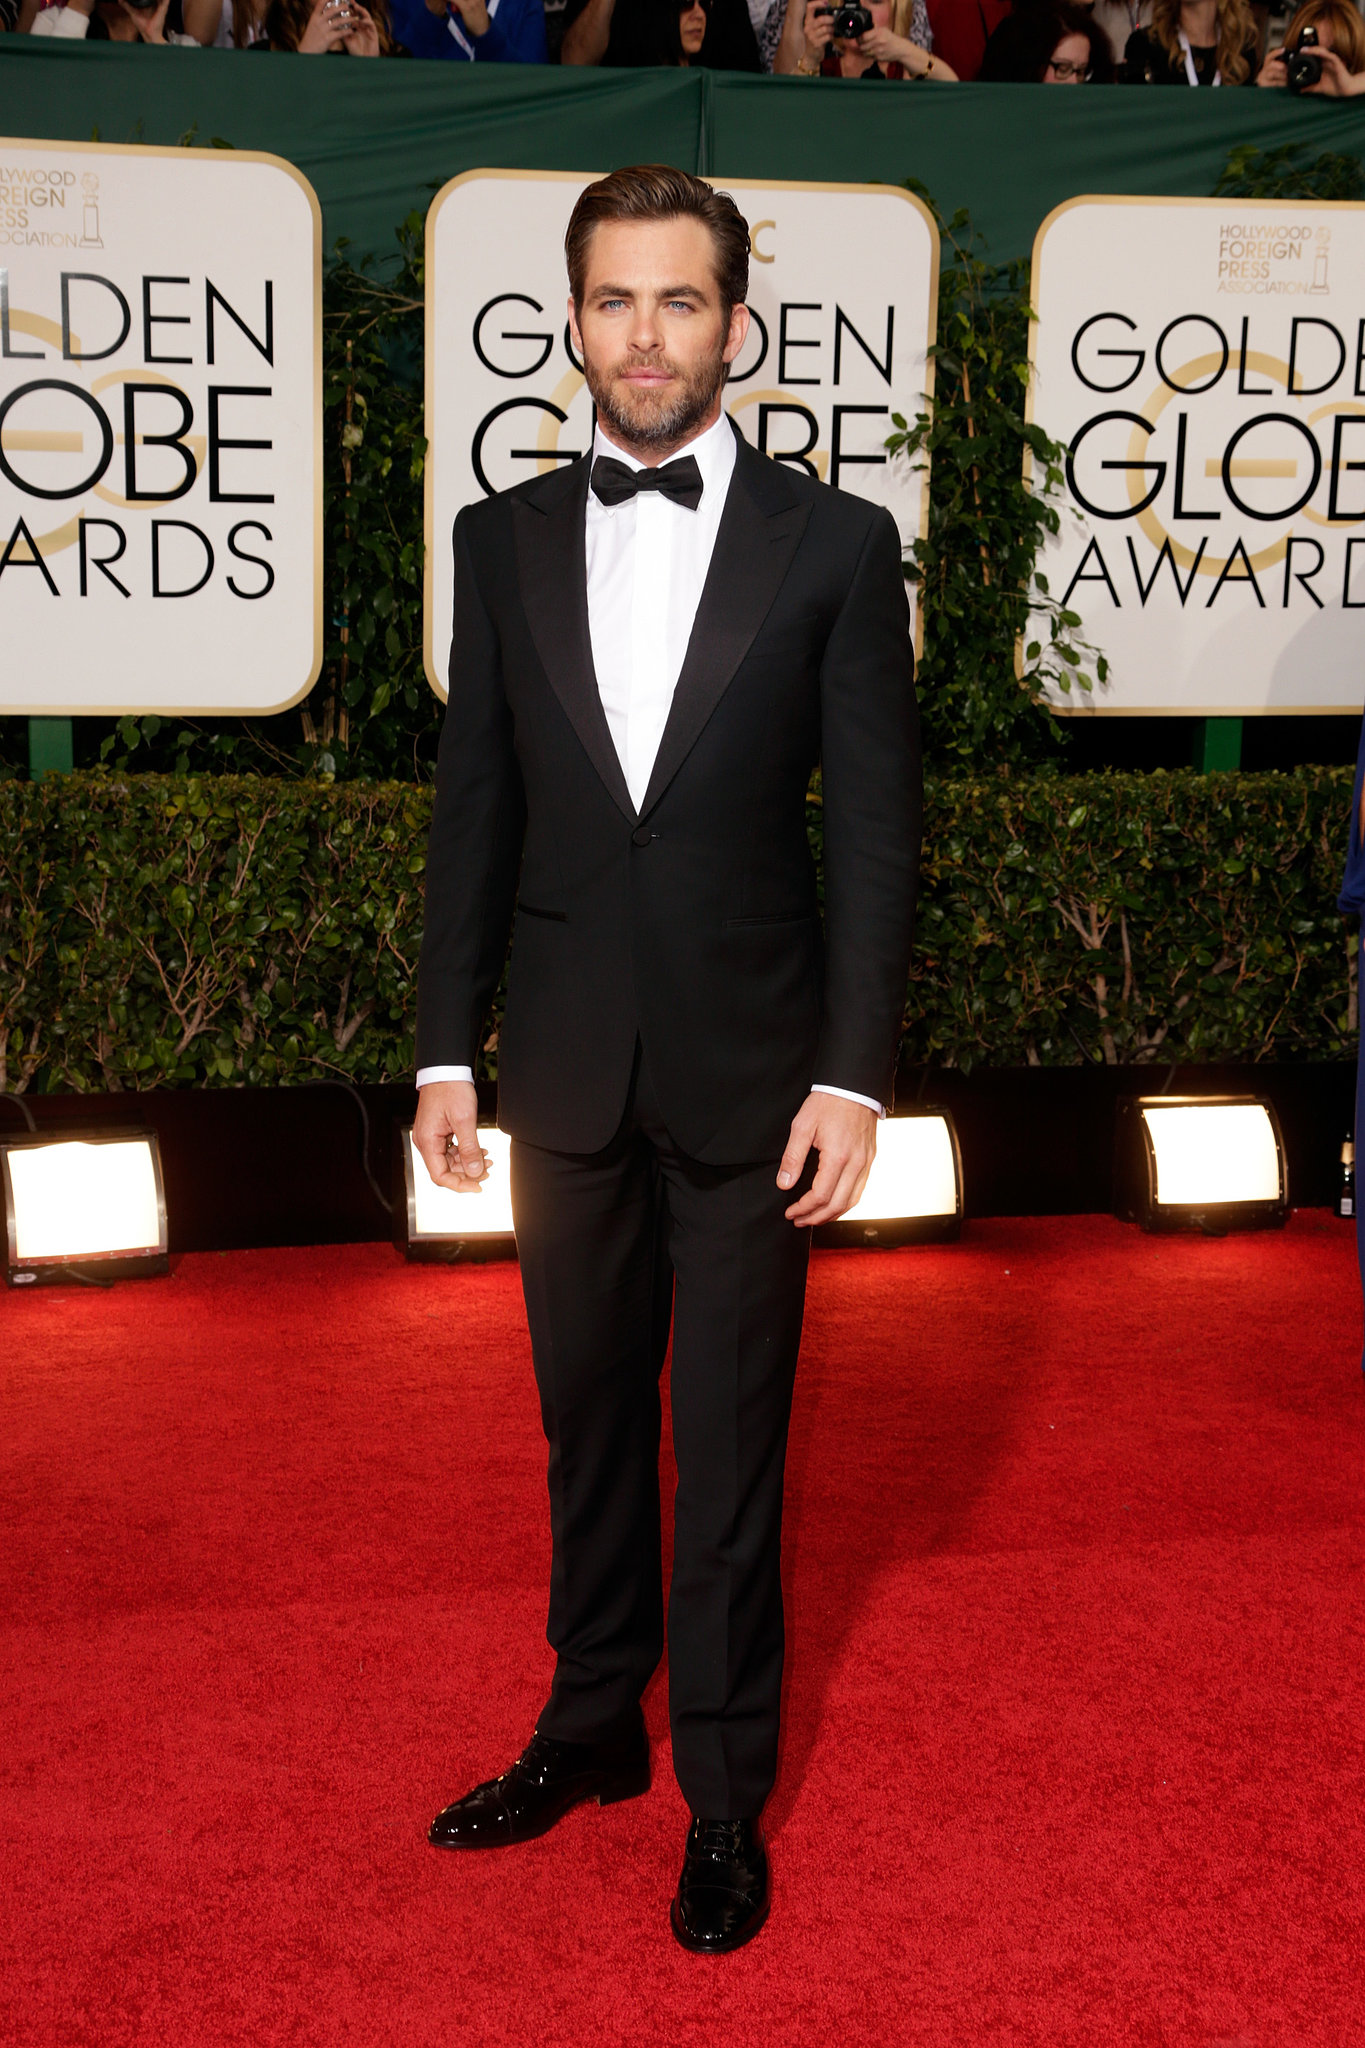 Chris Pine looked smoking hot on the red carpet.